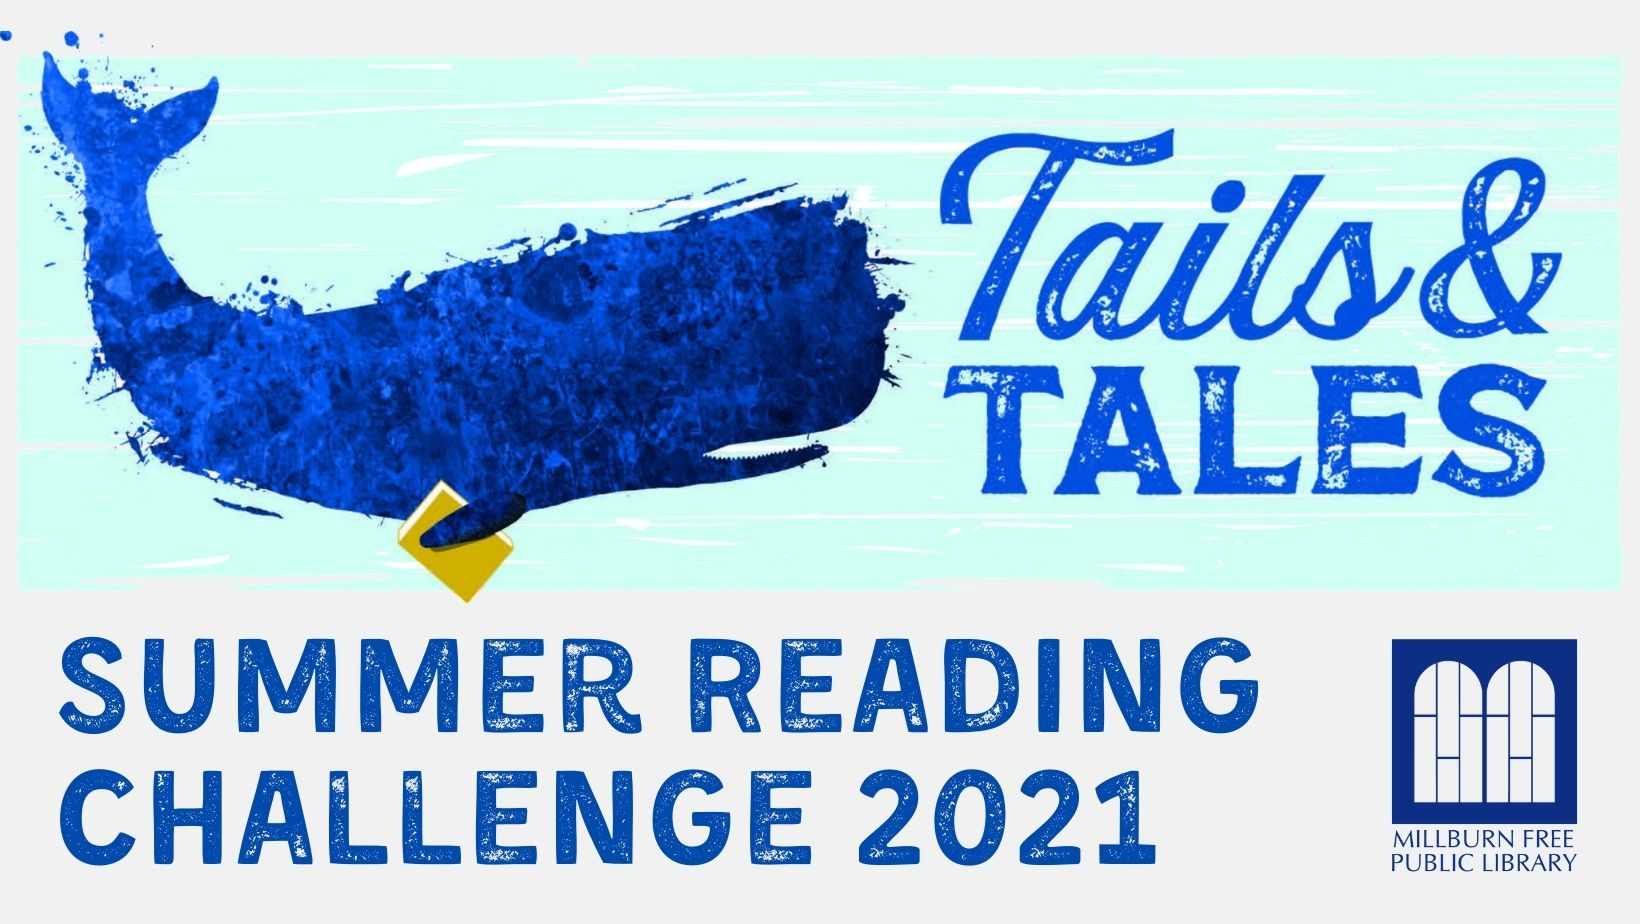 Summer Reading Challenge 2021: Tails & Tales